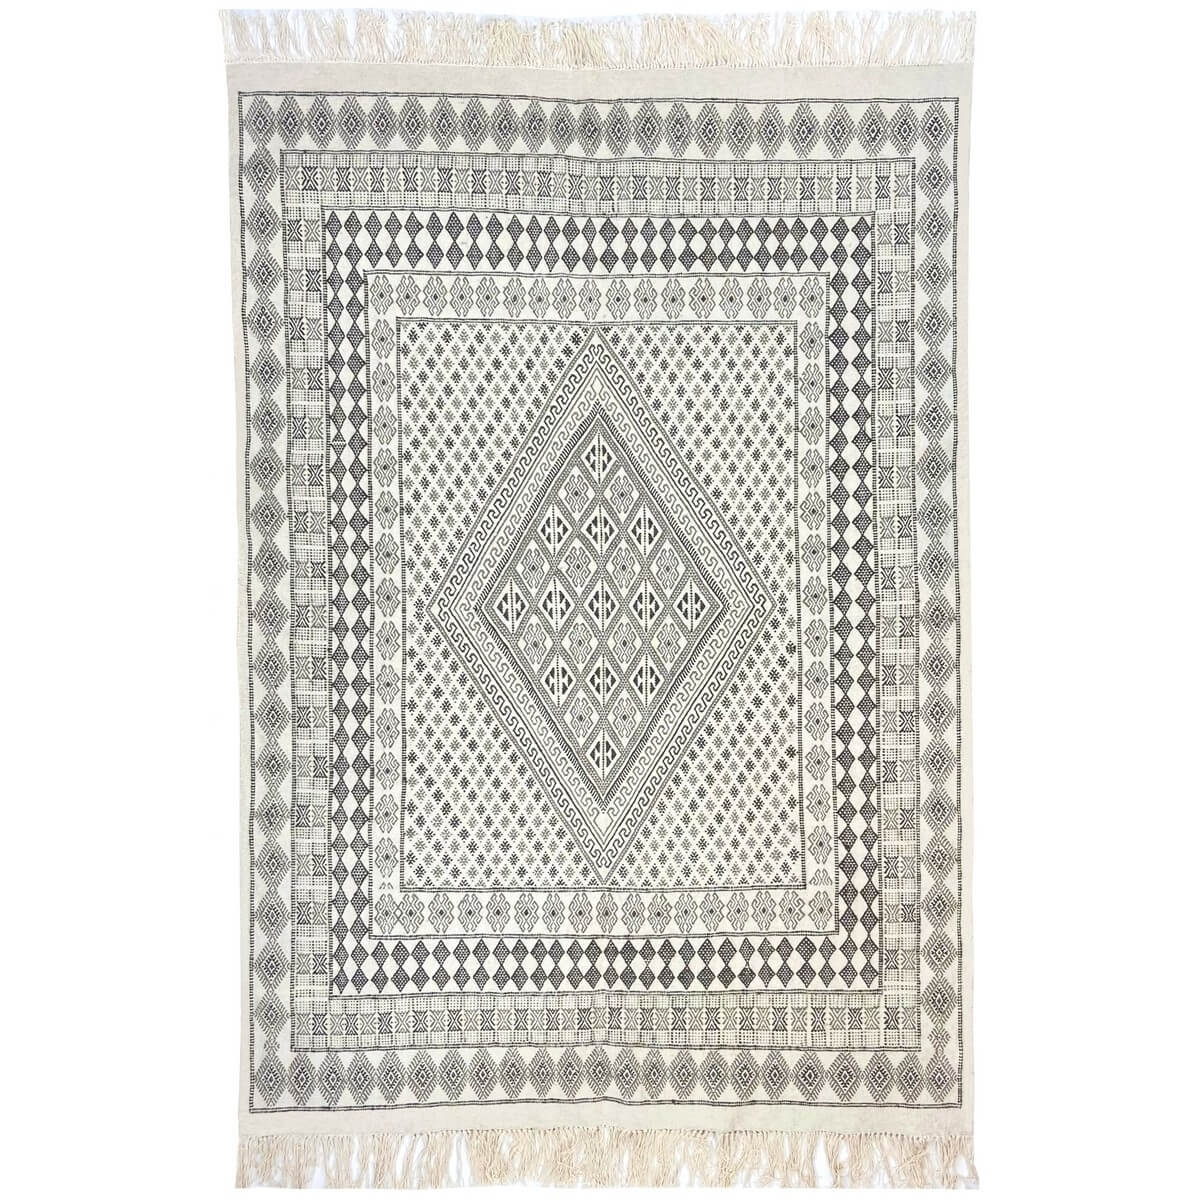 Berber carpet Large Rug Margoum Samssa 170x250 cm Black White Grey (Handmade, Wool, Tunisia) Tunisian margoum rug from the city